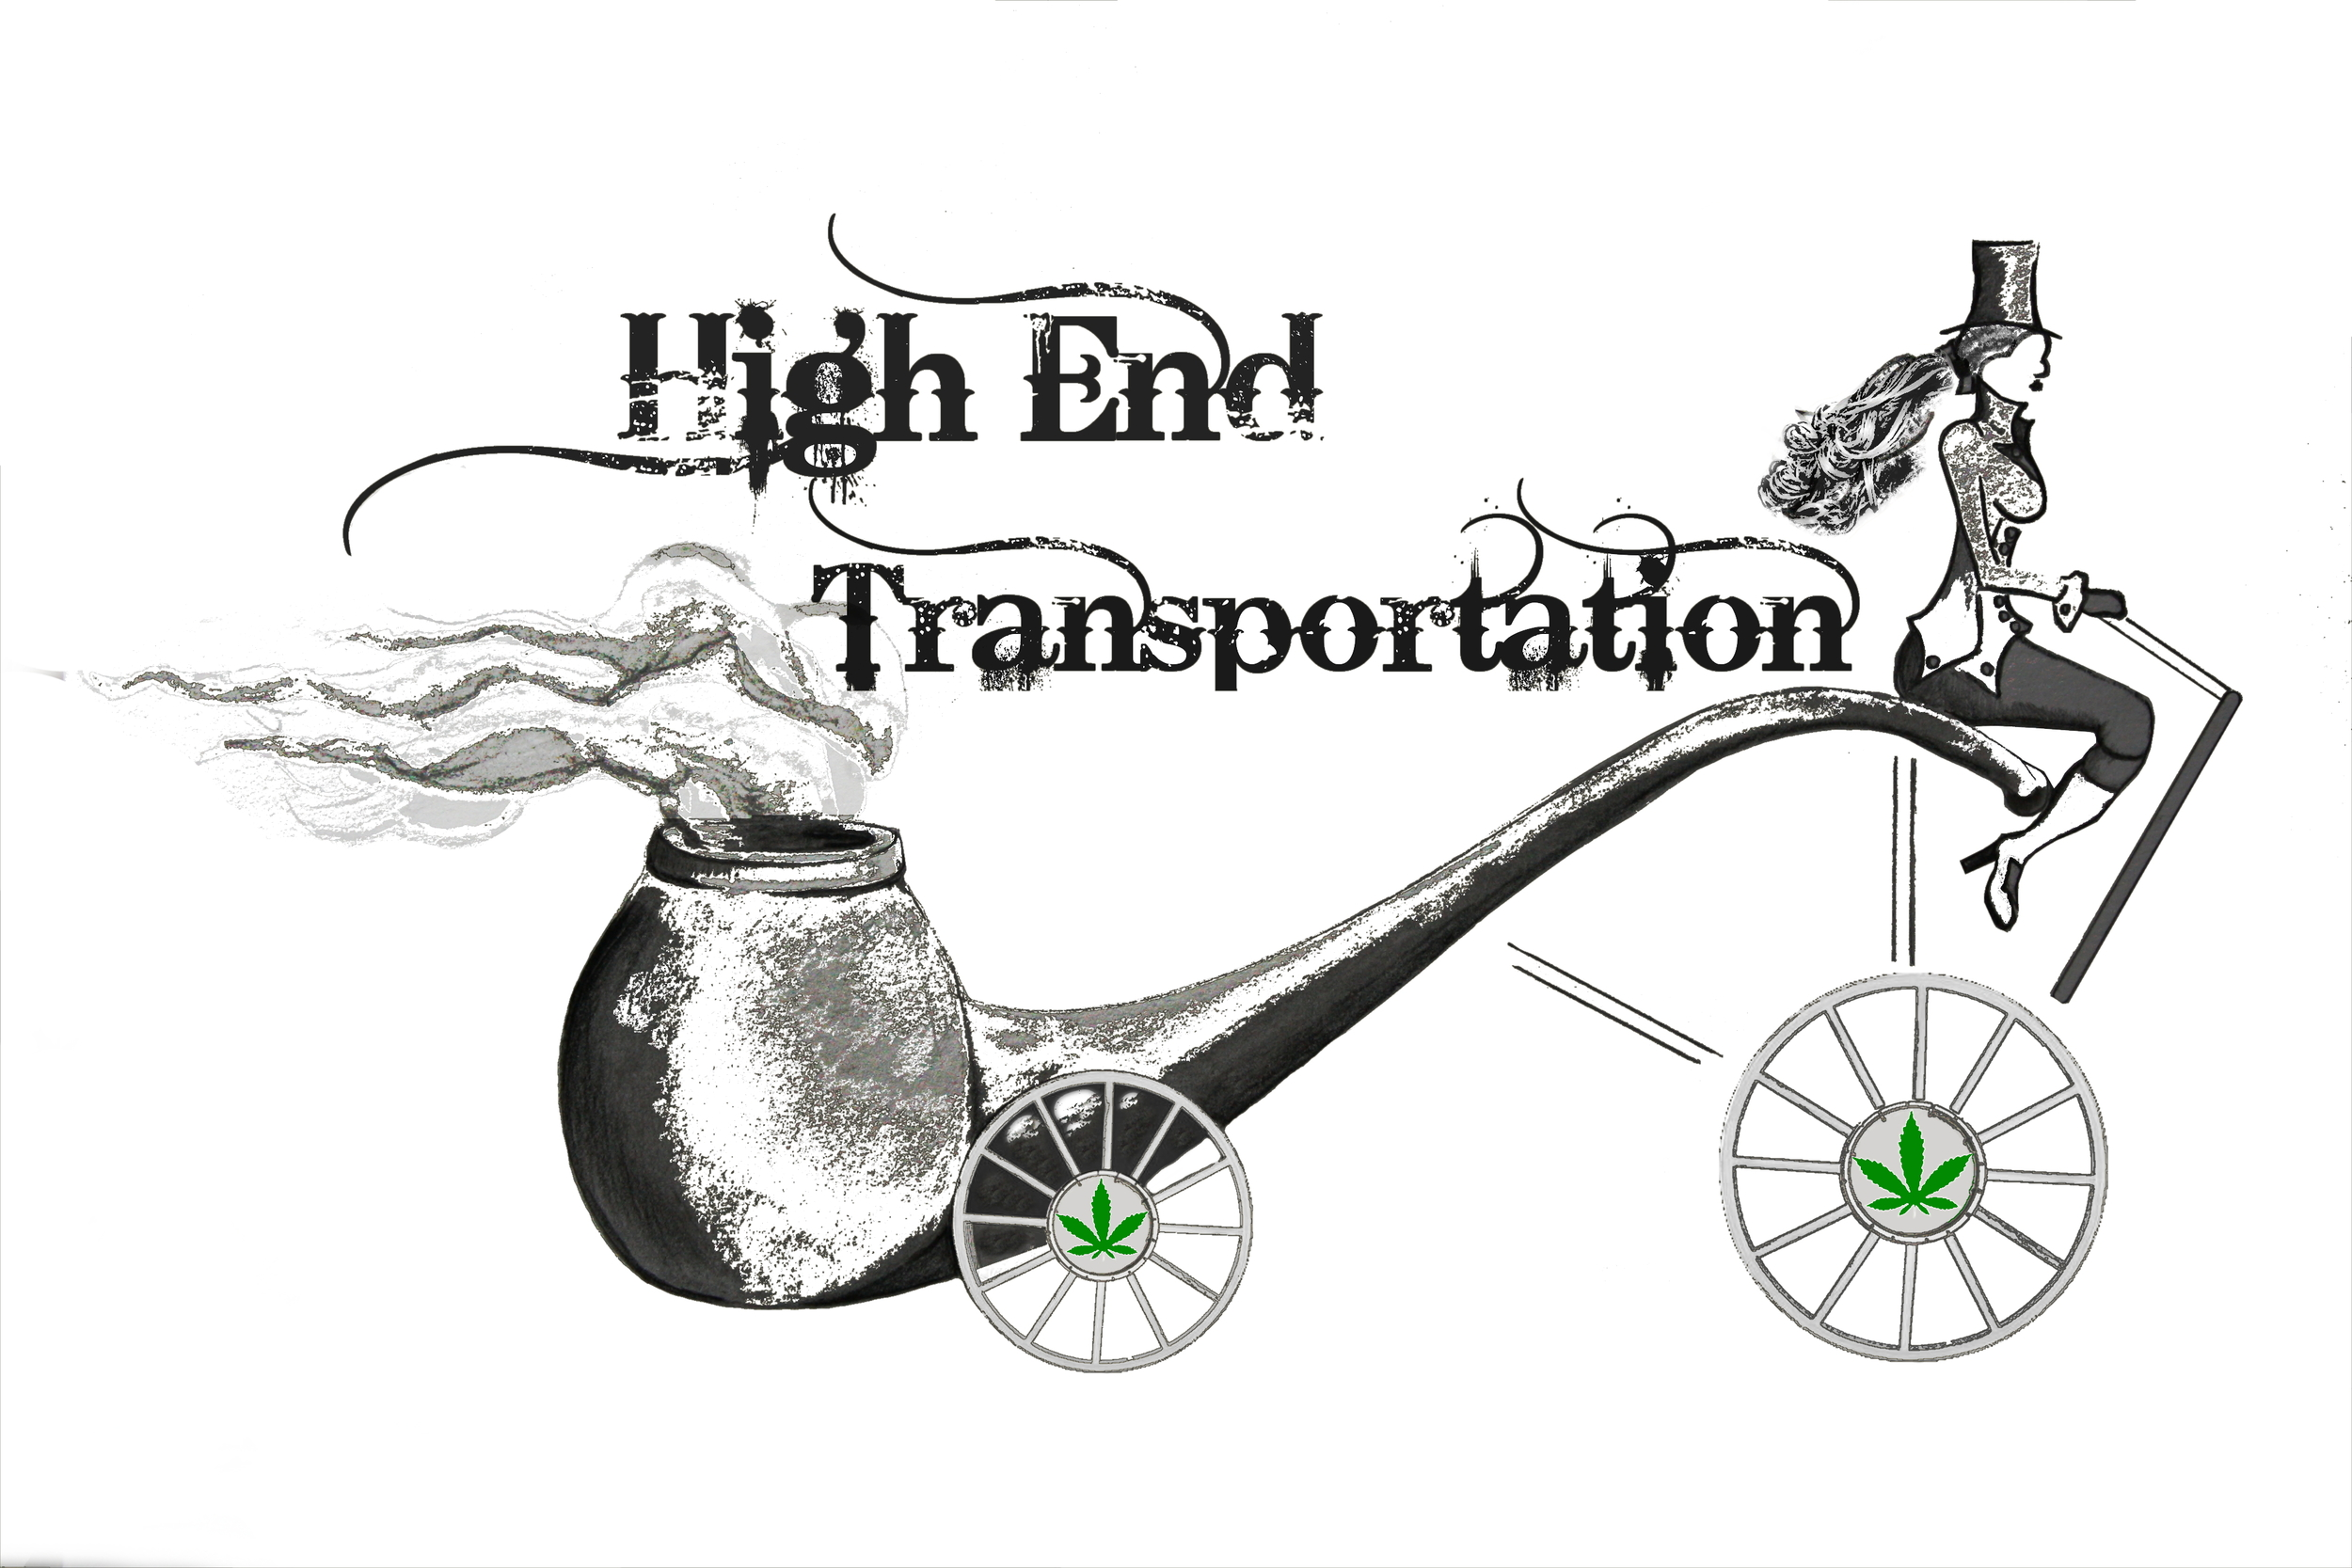 High End Transportation